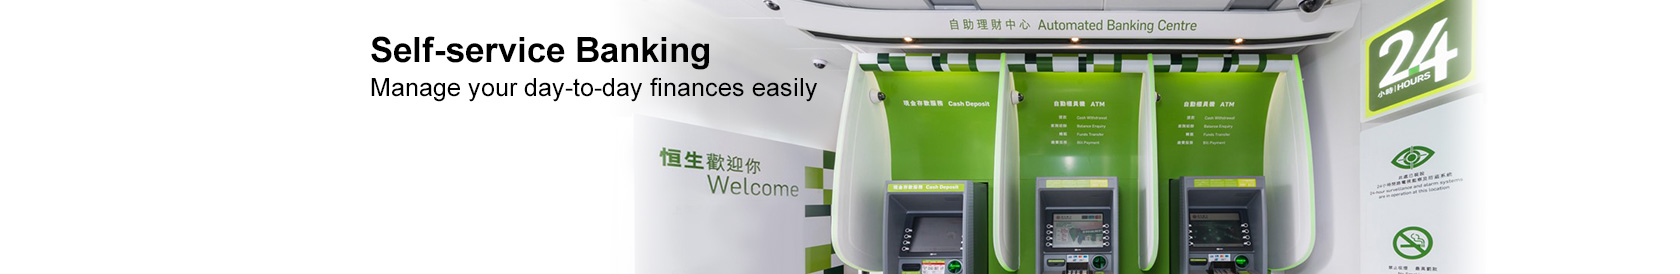 Foreign Currency ATM - Hang Seng Bank